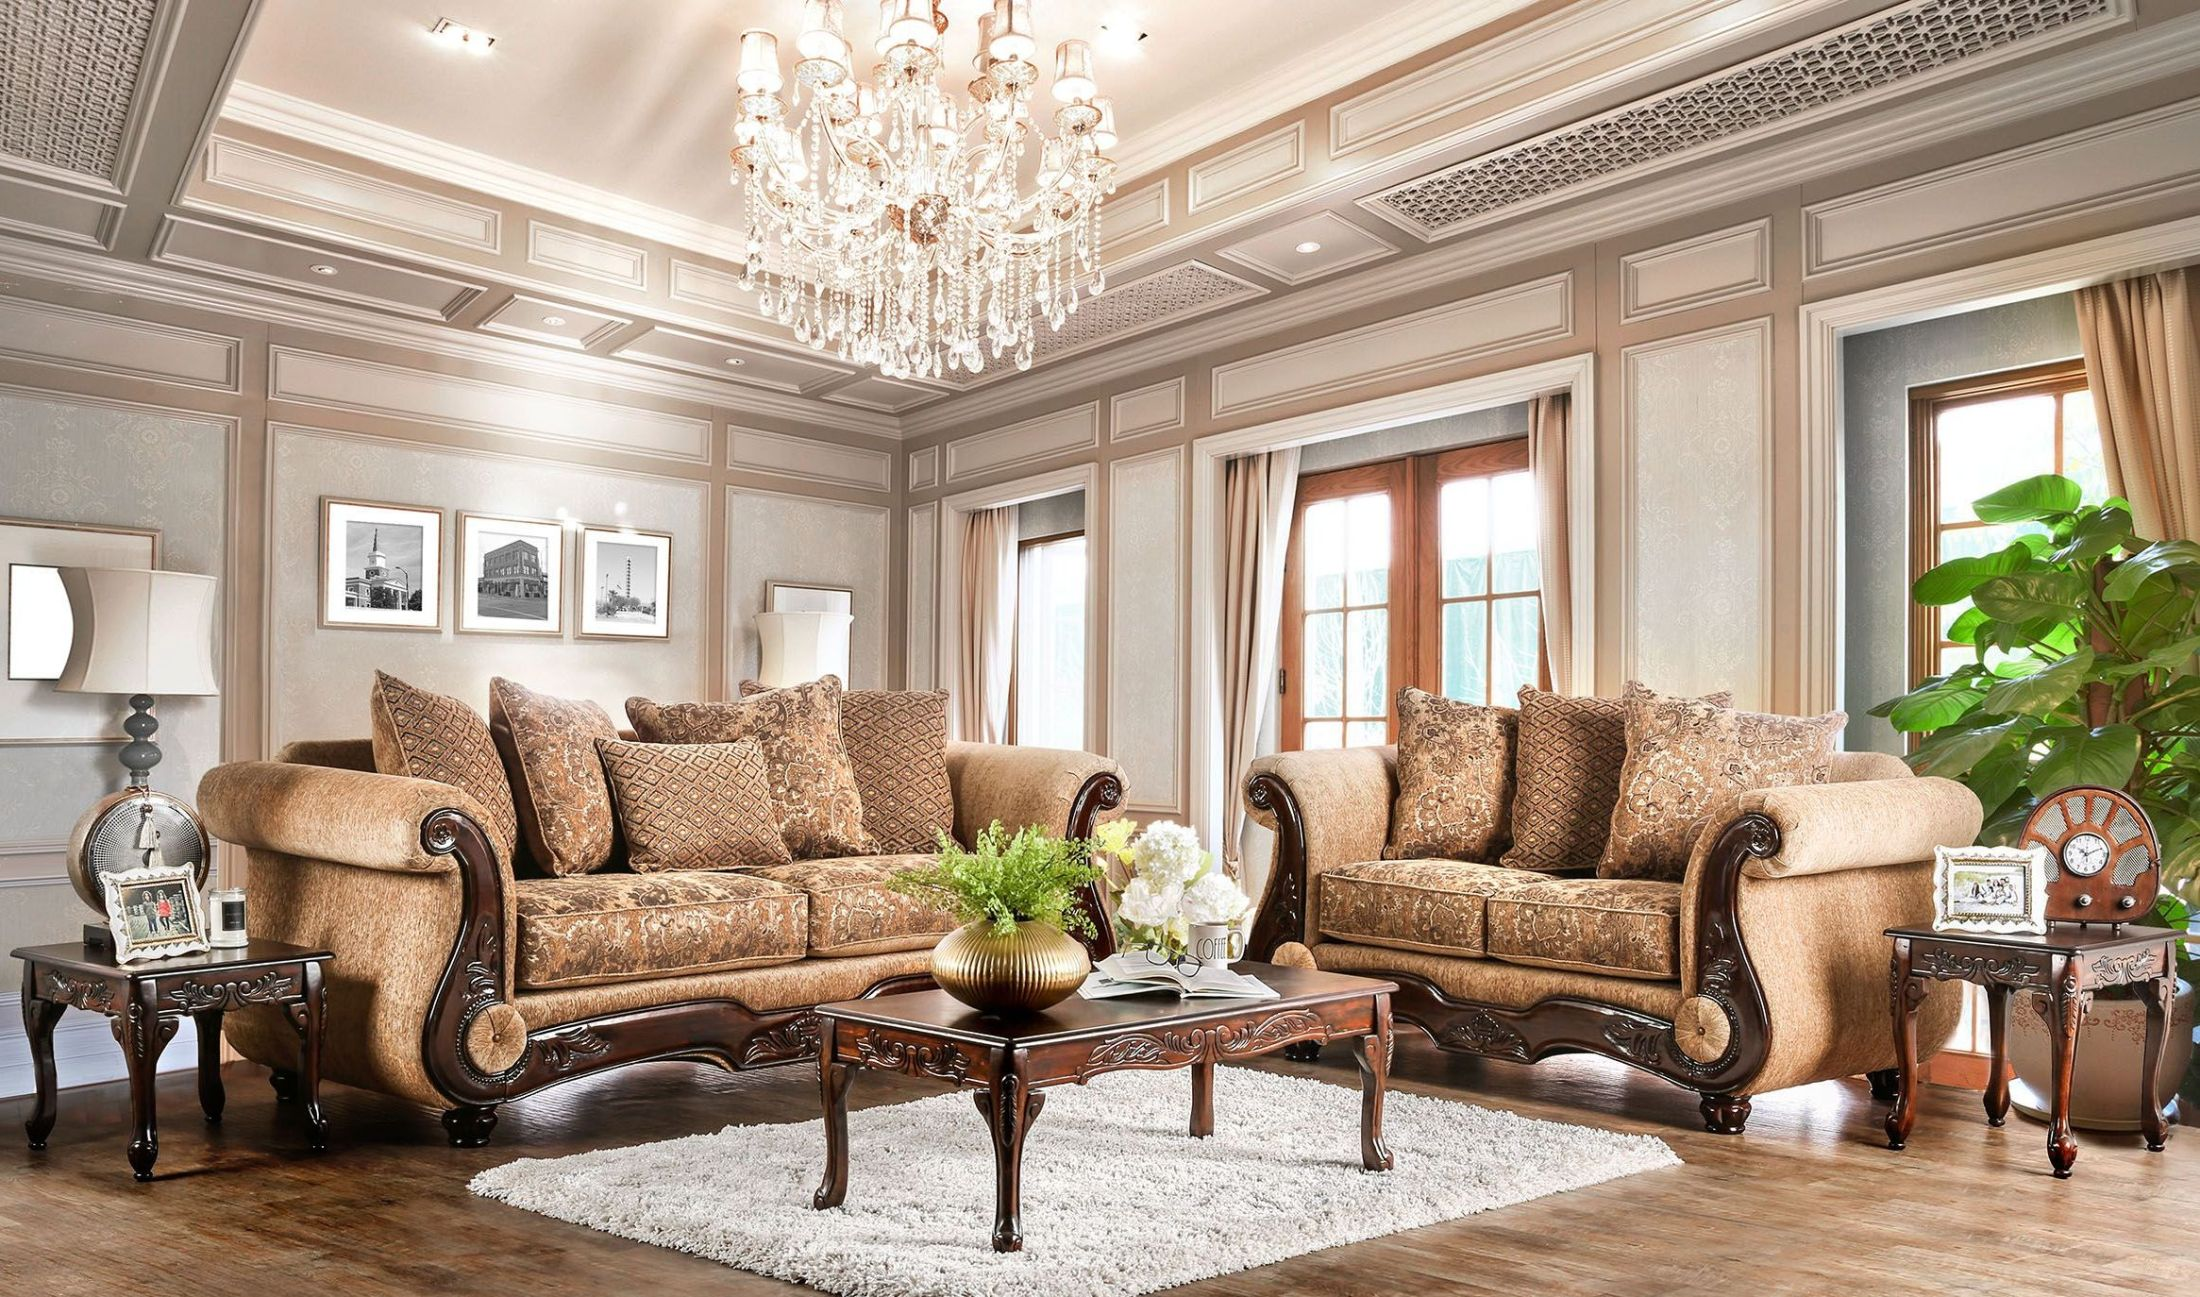 Nicanor Tan and Gold Living Room Set